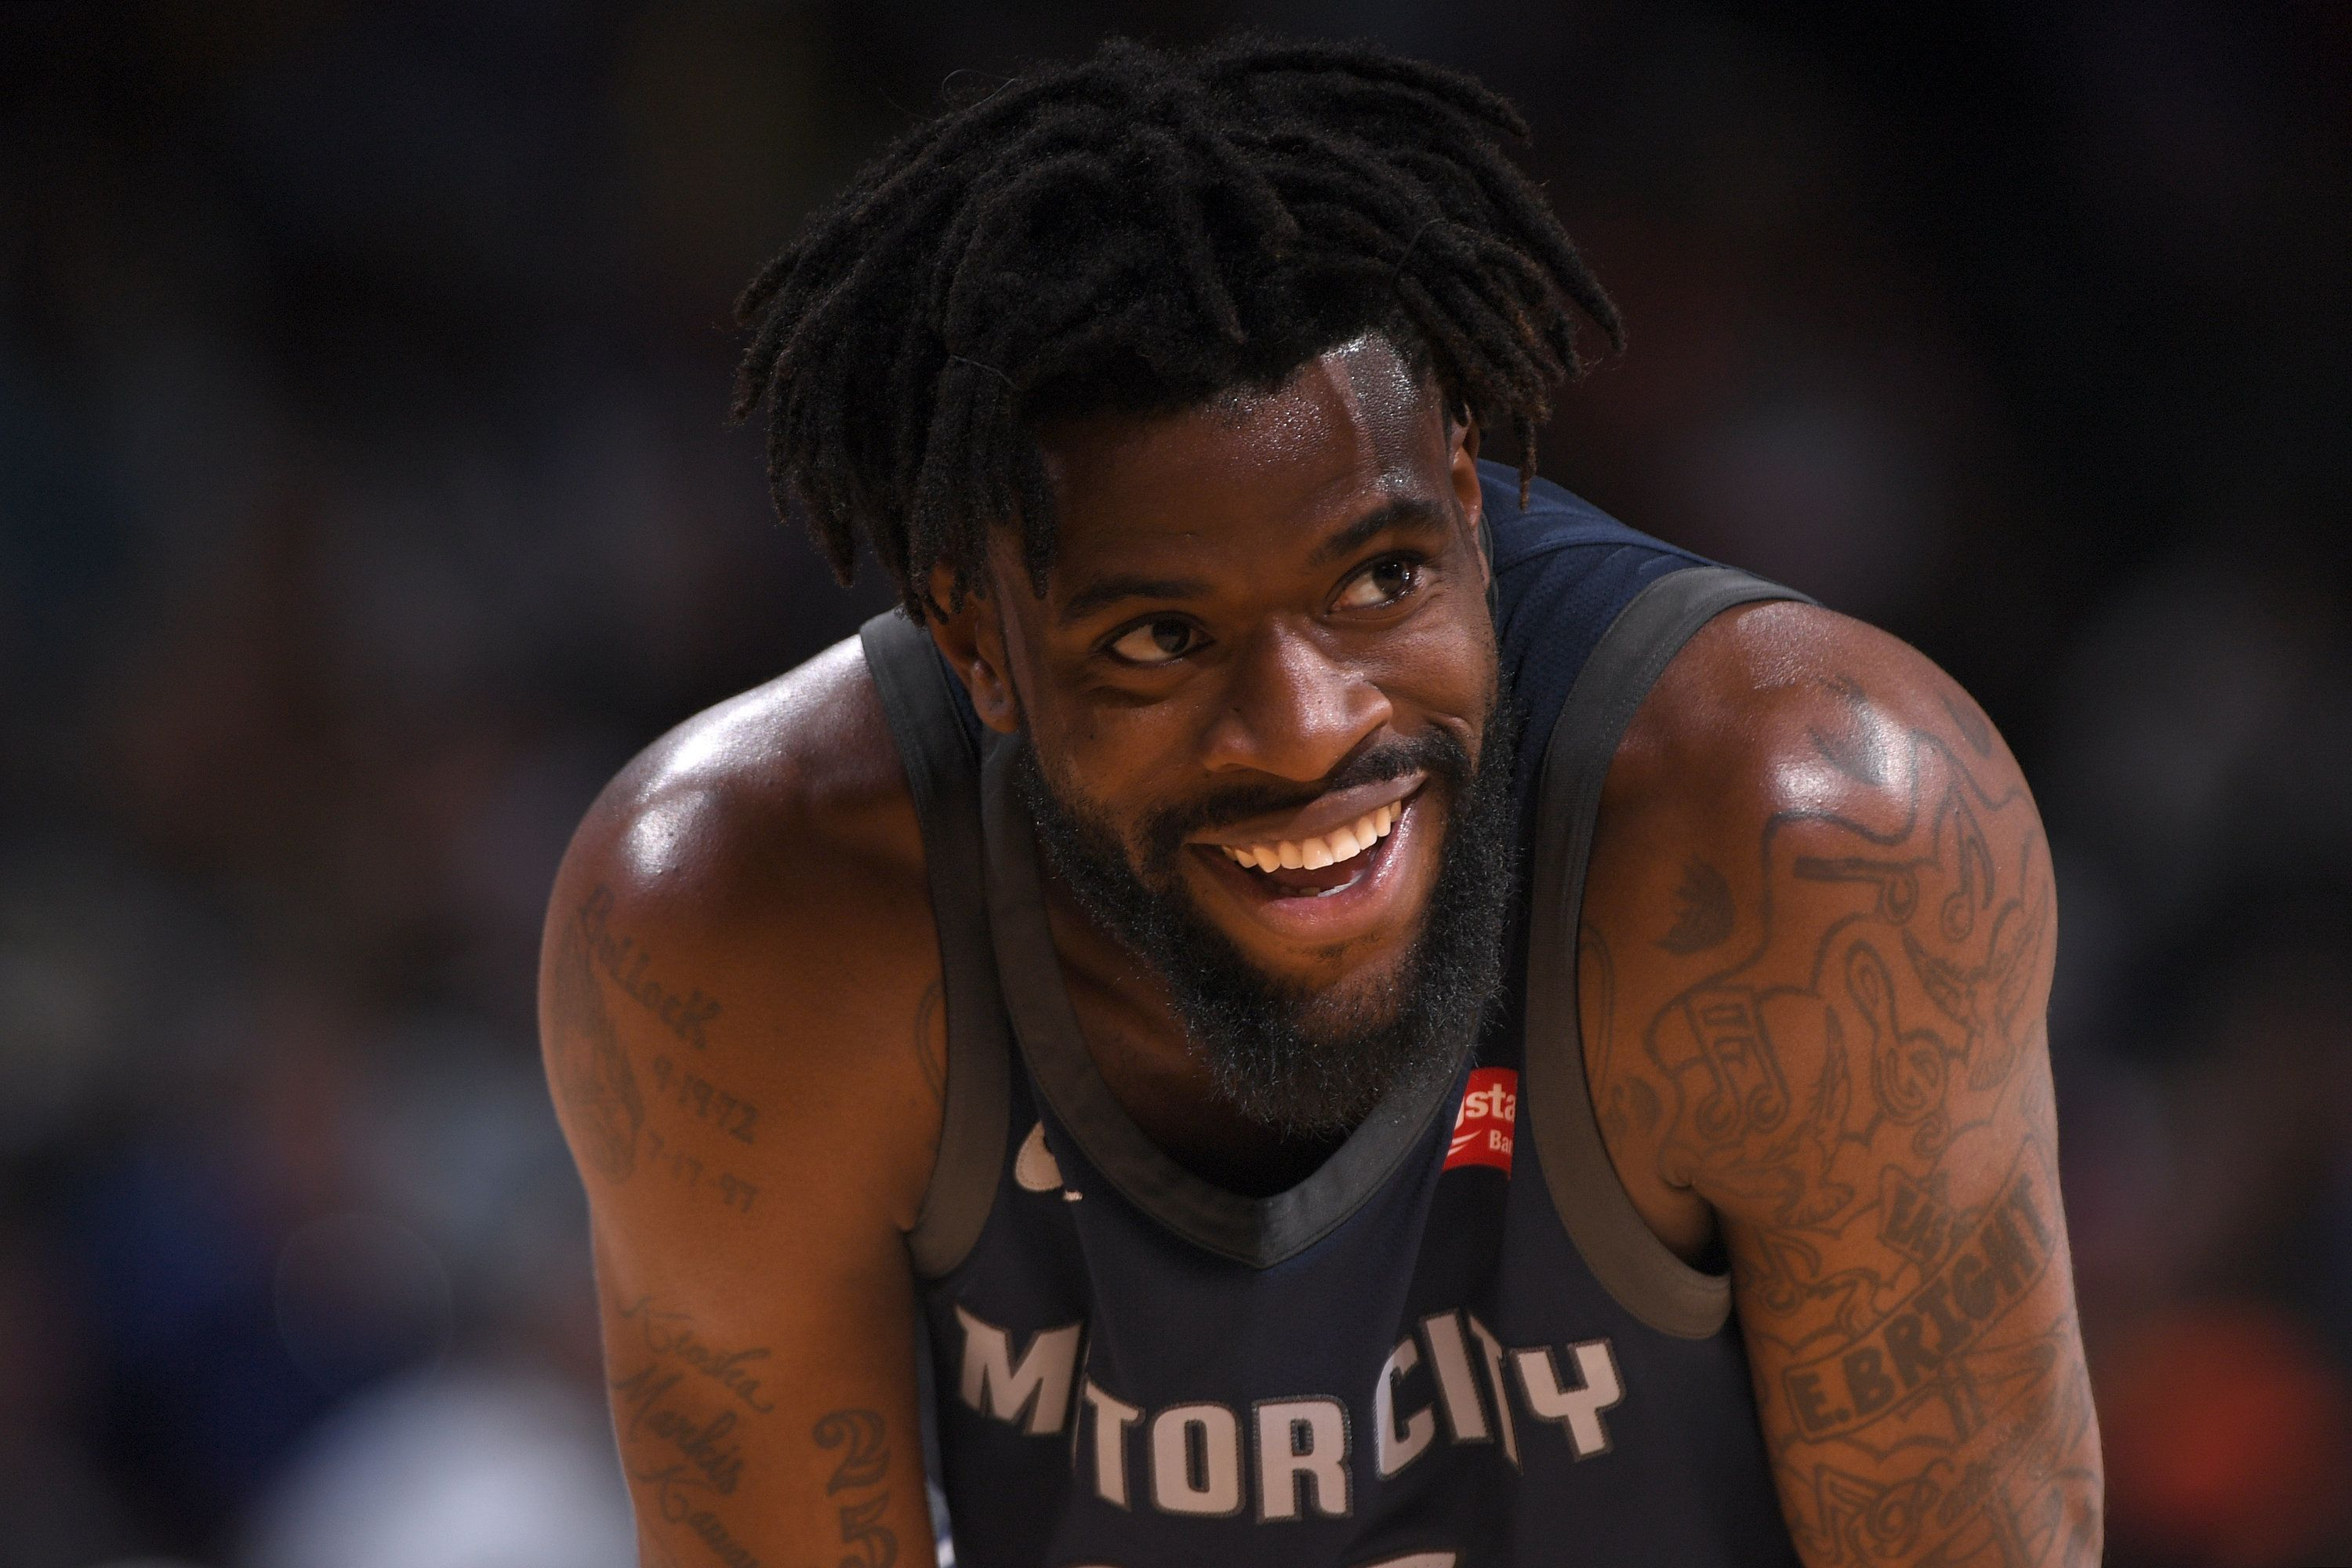 DENVER, CO - MARCH 15: Reggie Bullock #25 of the Detroit Pistons looks on during the game against the Denver Nuggets on March 15, 2018 at the Pepsi Center in Denver, Colorado. NOTE TO USER: User expressly acknowledges and agrees that, by downloading and/or using this photograph, user is consenting to the terms and conditions of the Getty Images License Agreement. Mandatory Copyright Notice: Copyright 2018 NBAE (Photo by Garrett Ellwood/NBAE via Getty Images)